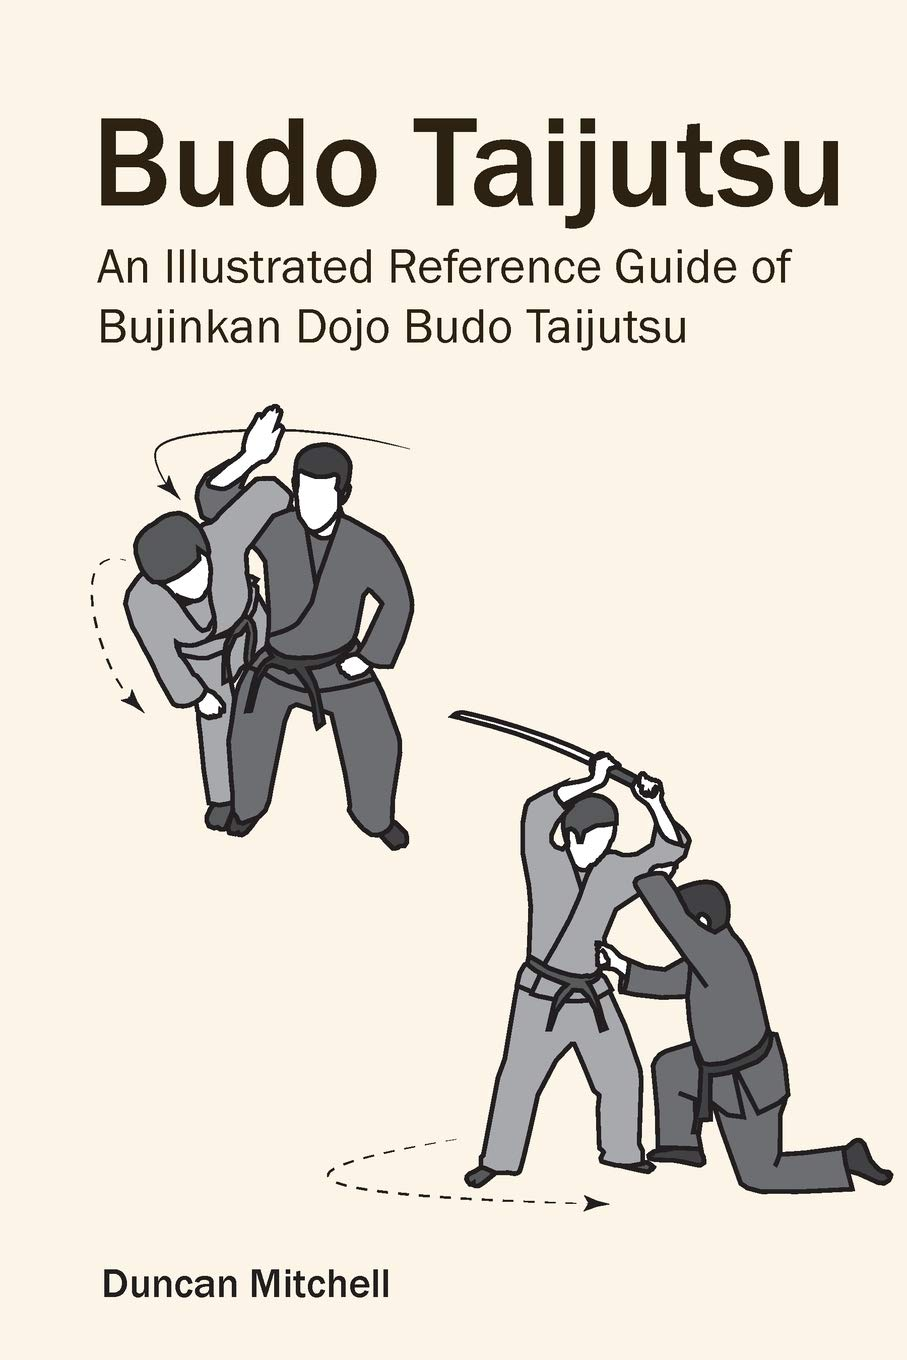 Budo Taijutsu An Illustrated Reference Guide Of Bujinkan Dojo Budo Taijutsu Mitchell Duncan 9780648960805 Amazon Com Books Taijutsu techniques do not require hand seals. bujinkan dojo budo taijutsu